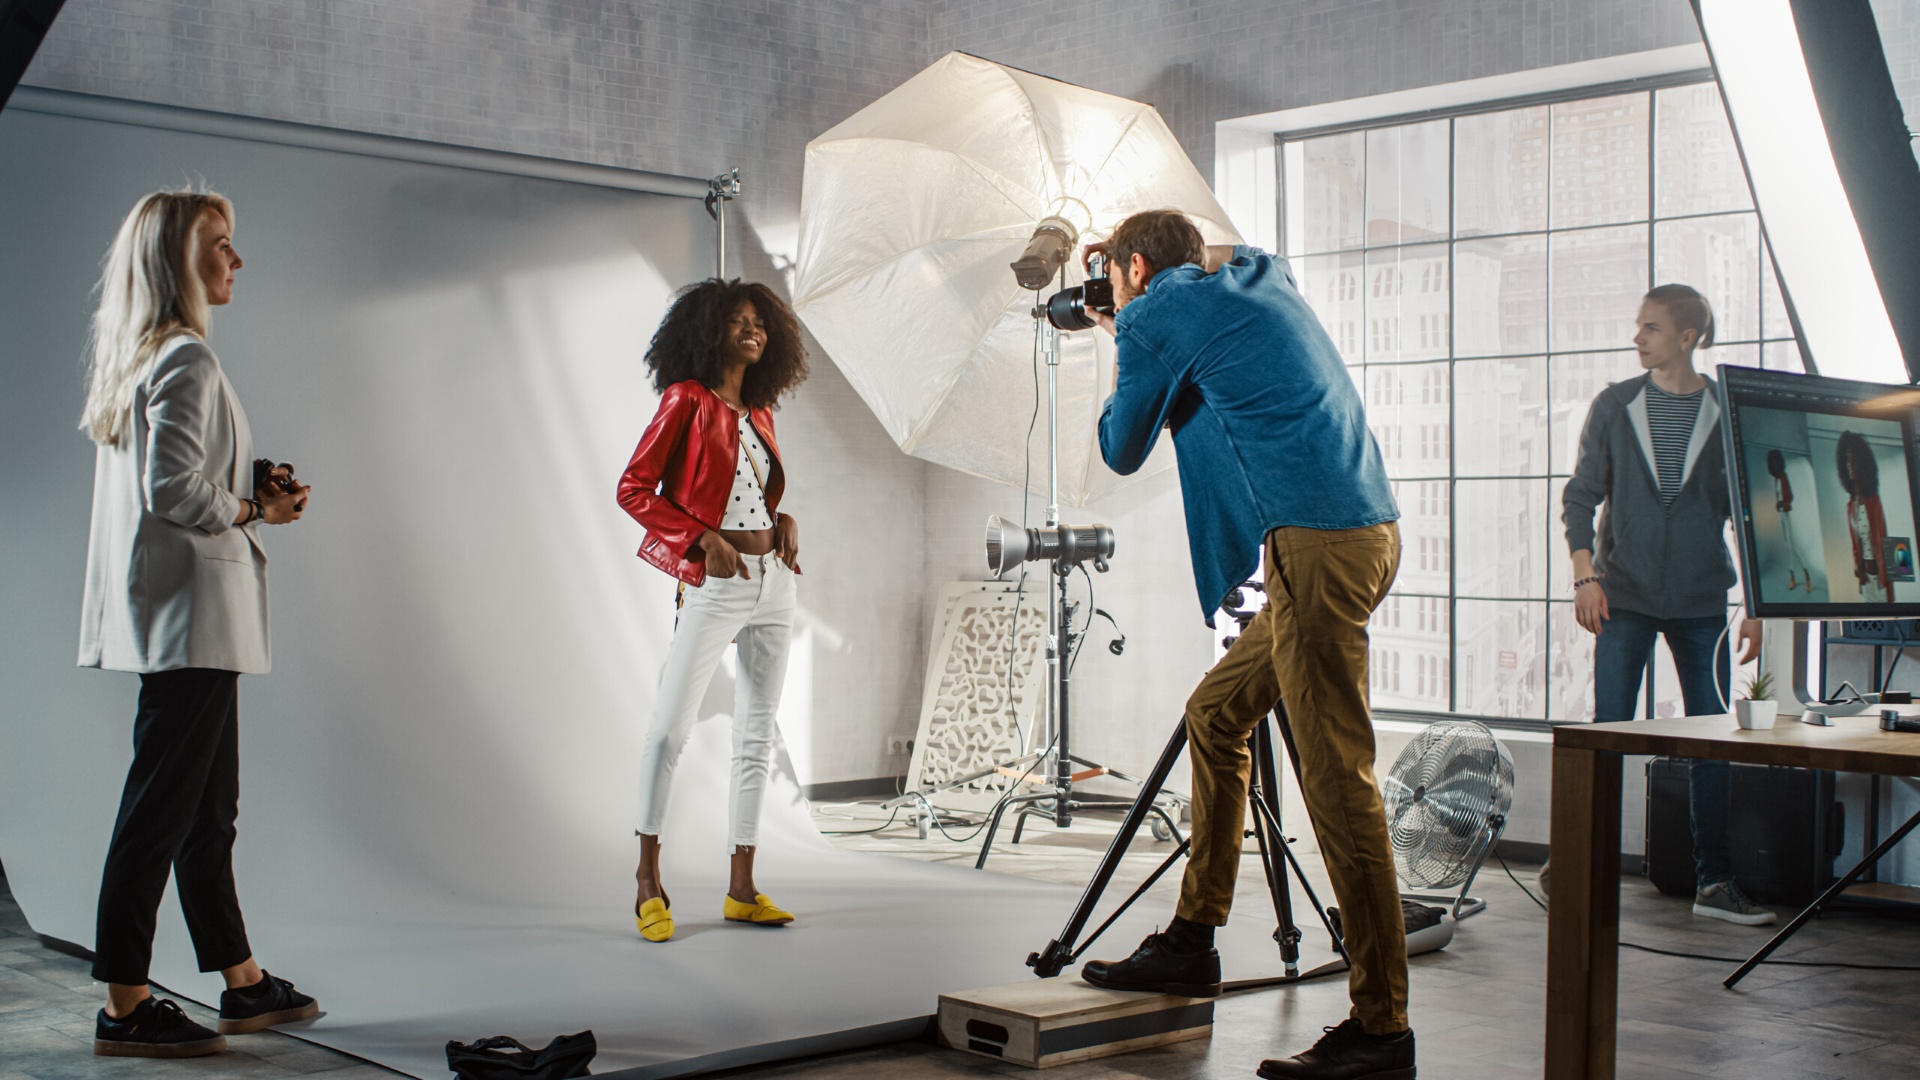 Reduce Photoshoot Costs: A Retailer's Guide